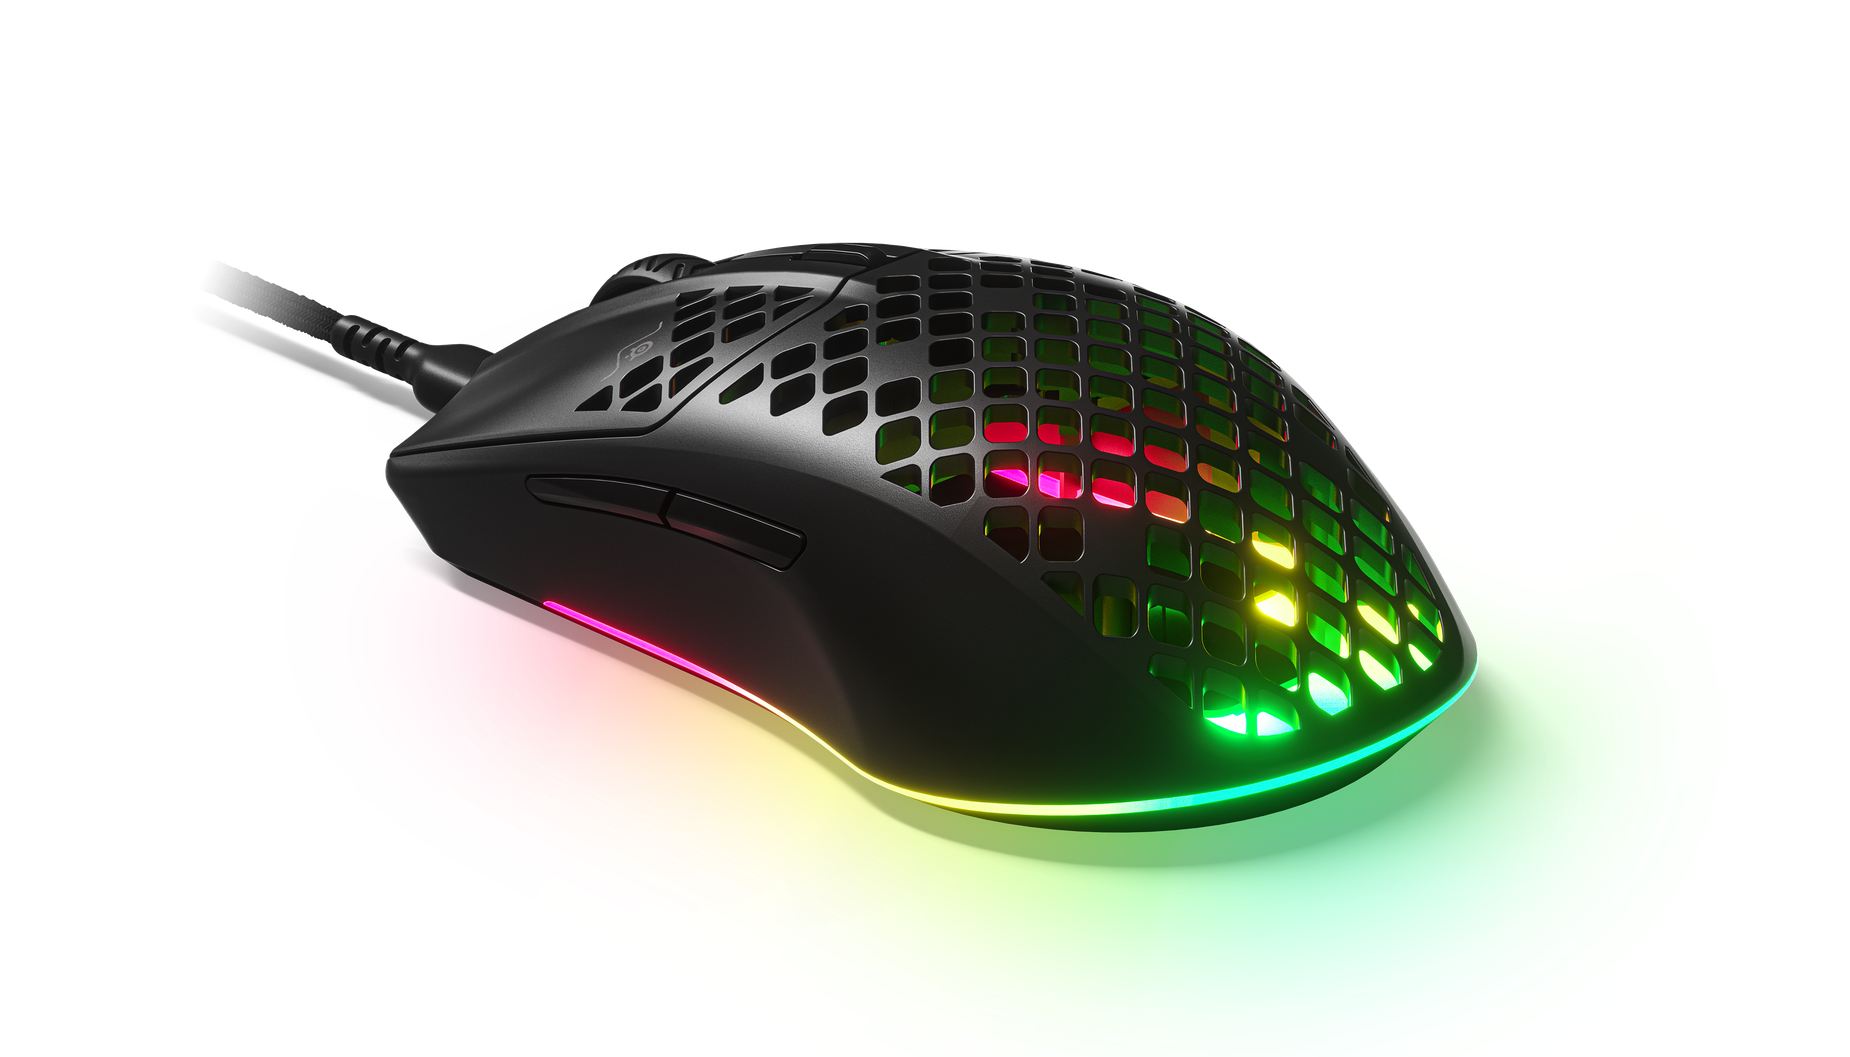 The Aerox 3 mouse displayed from a the back highlighting the comfortability of the grip and rear RGB